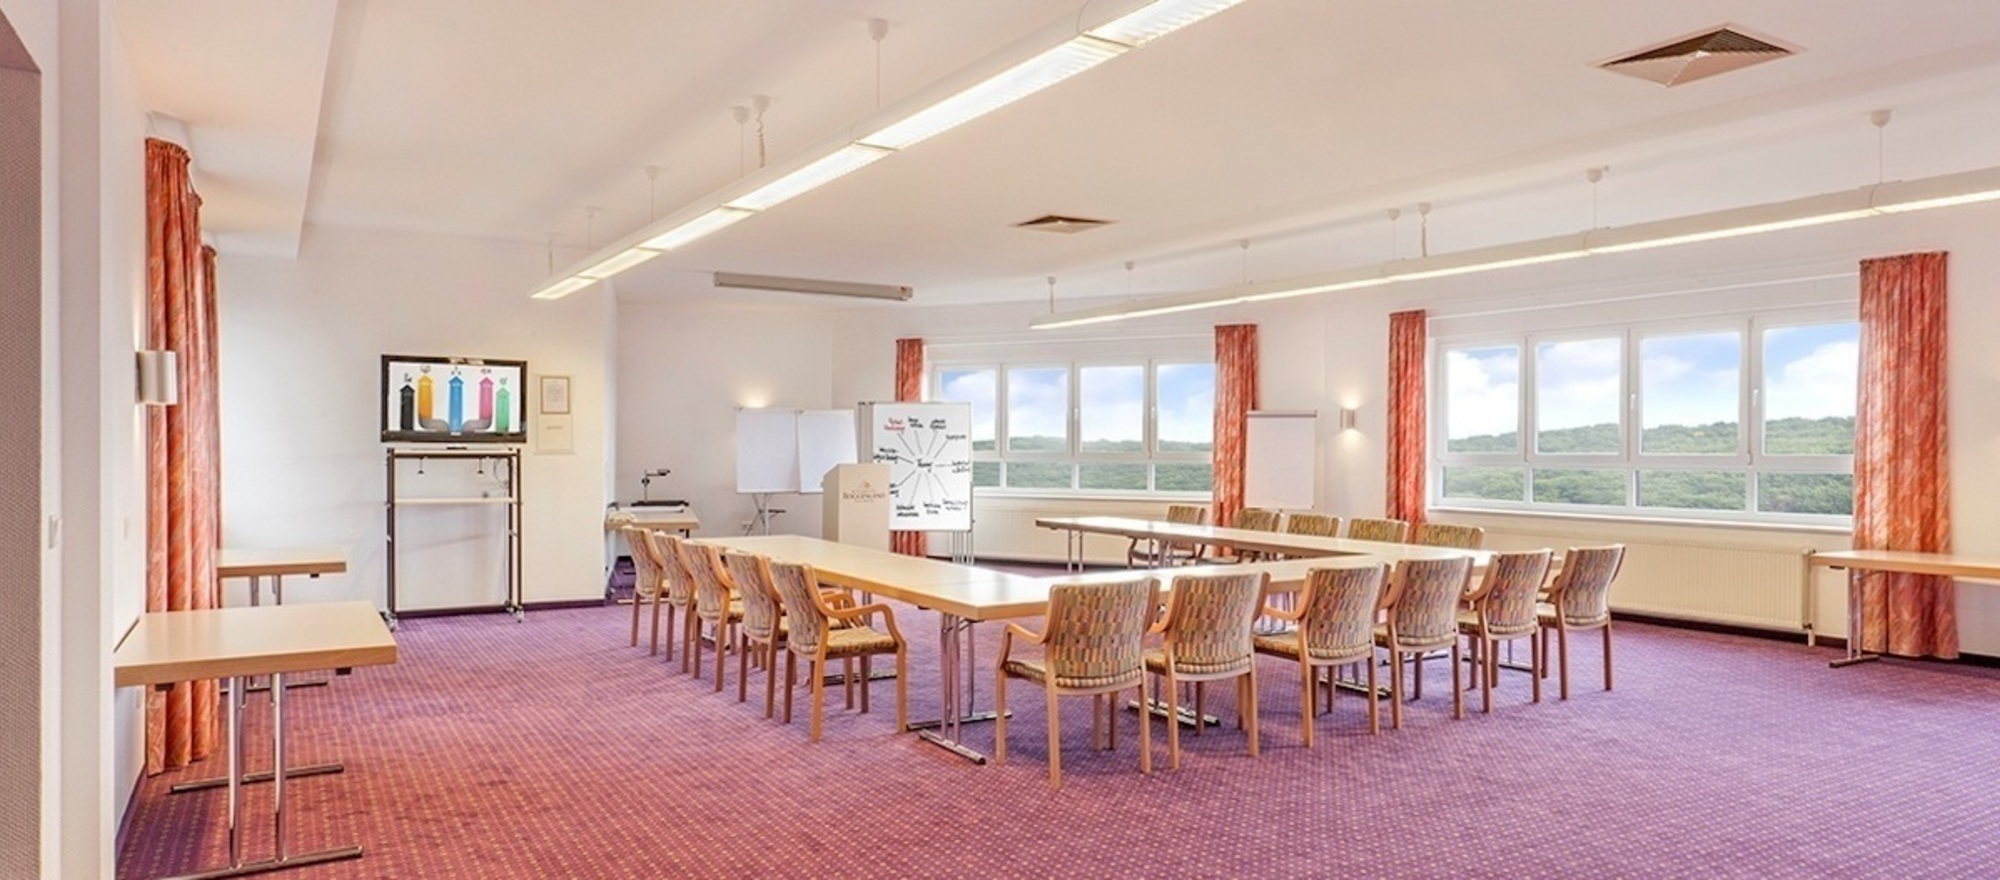 Conference room at the Ringhotel Roggenland in Waldeck, 4 stars hotel in Hessisches Bergland/Vogelsberg